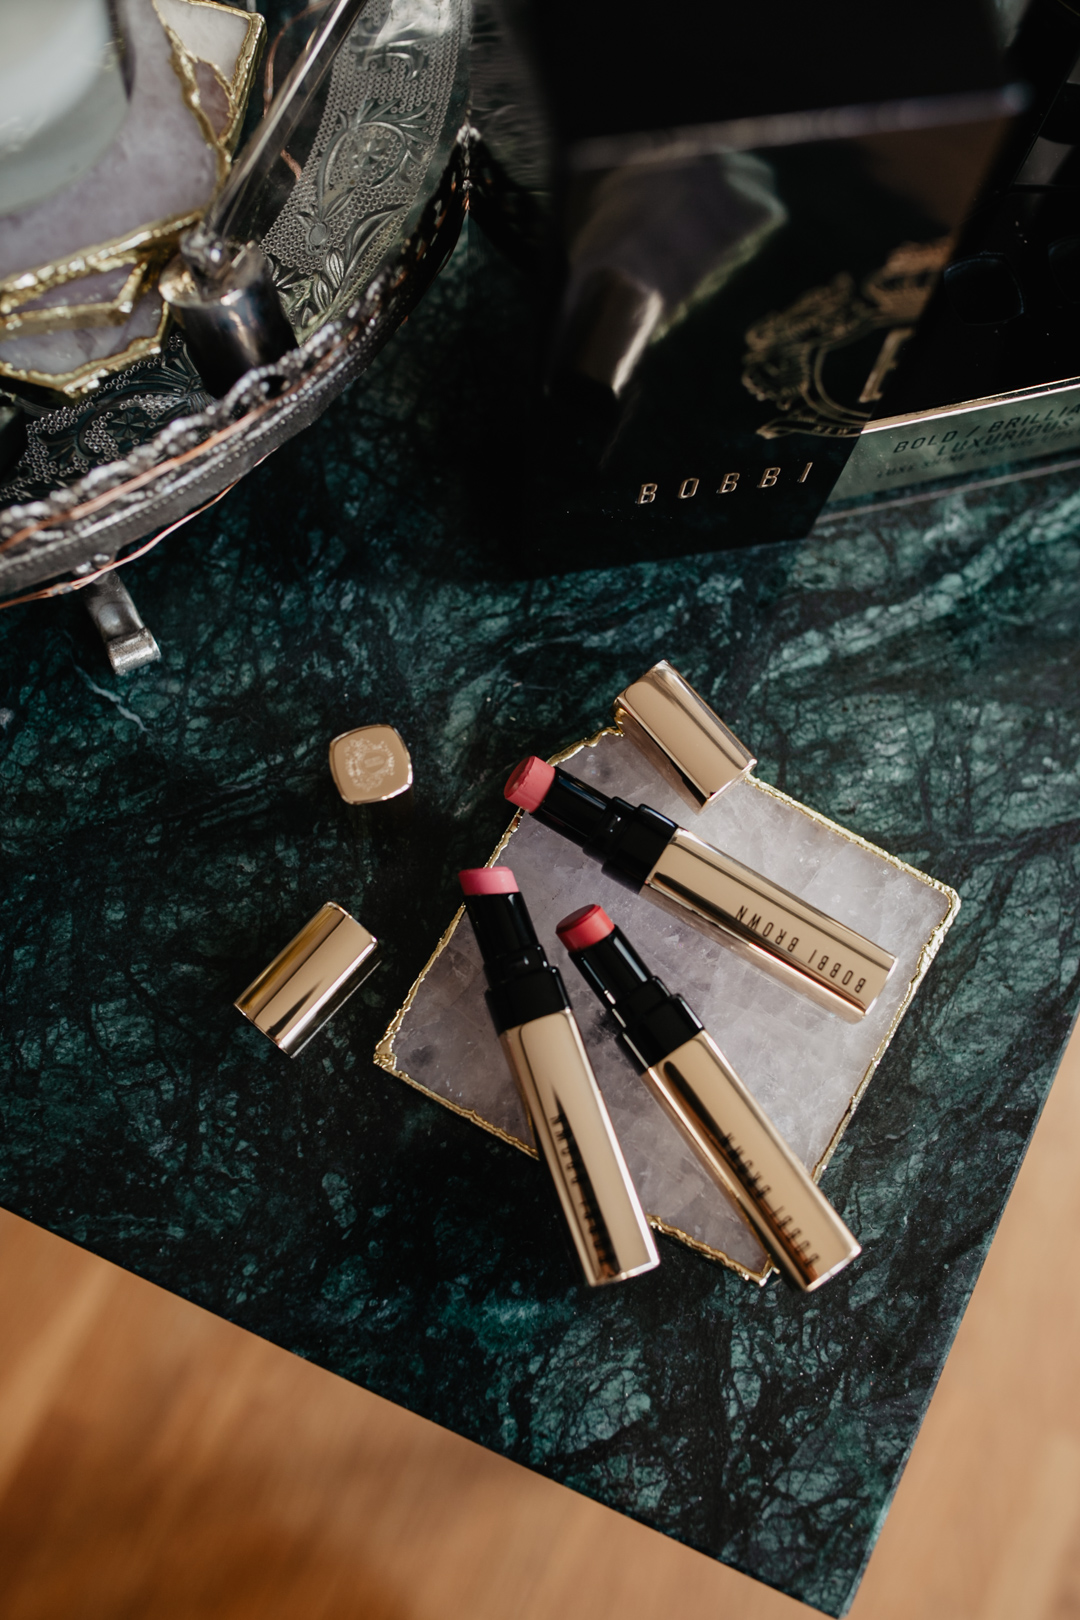 Die neuen Luxe Shine Intense Lippenstifte von Bobbi Brown - Pieces of Mariposa // Fashion & Lifestyle Blog Nürnberg